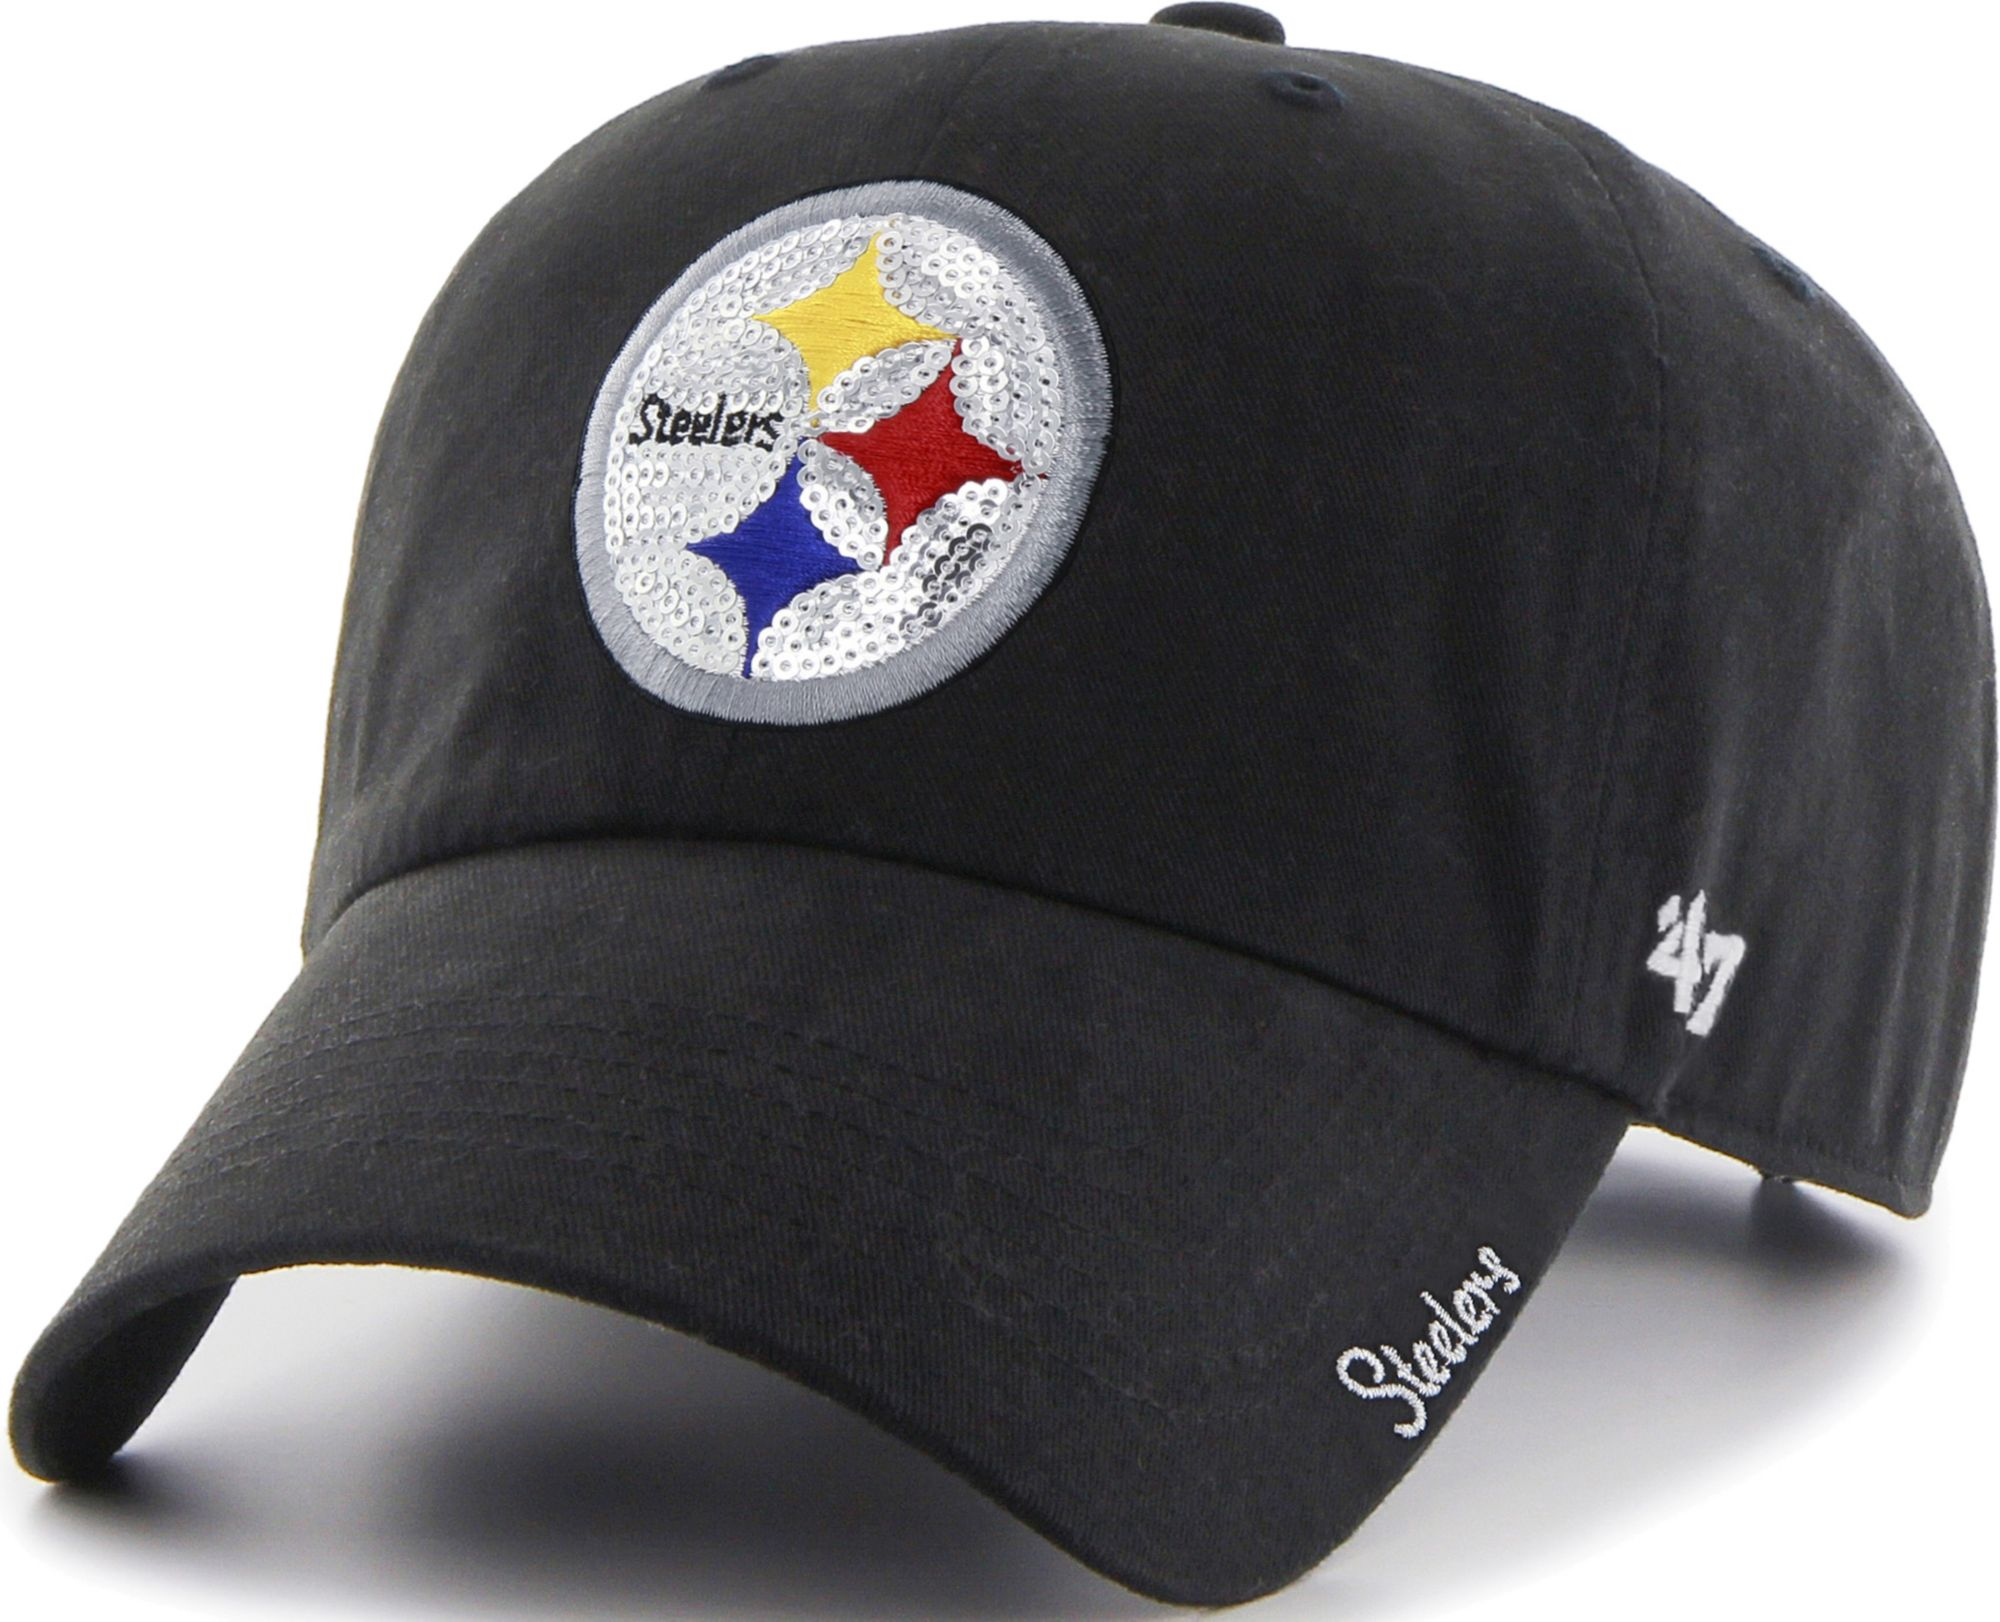 5e05a14ab6dfe0 47 Women's Pittsburgh Steelers Sparkle Logo Black Adjustable Hat ...